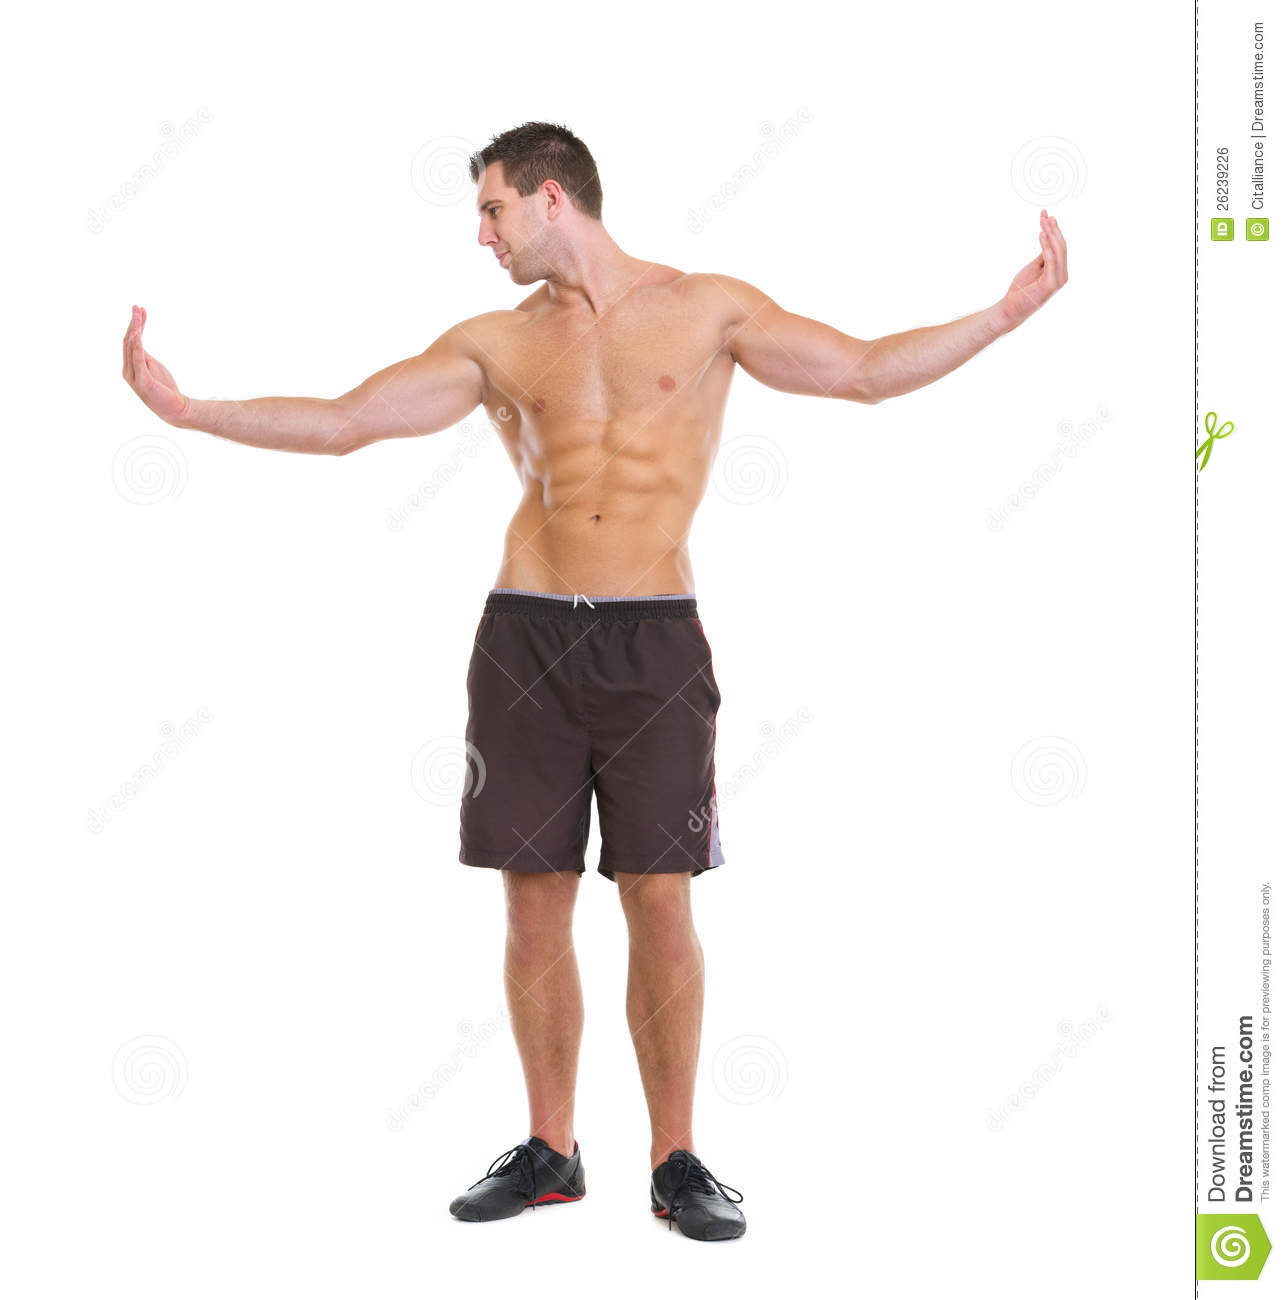 healthy-man-showing-muscular-body-26239226.jpg